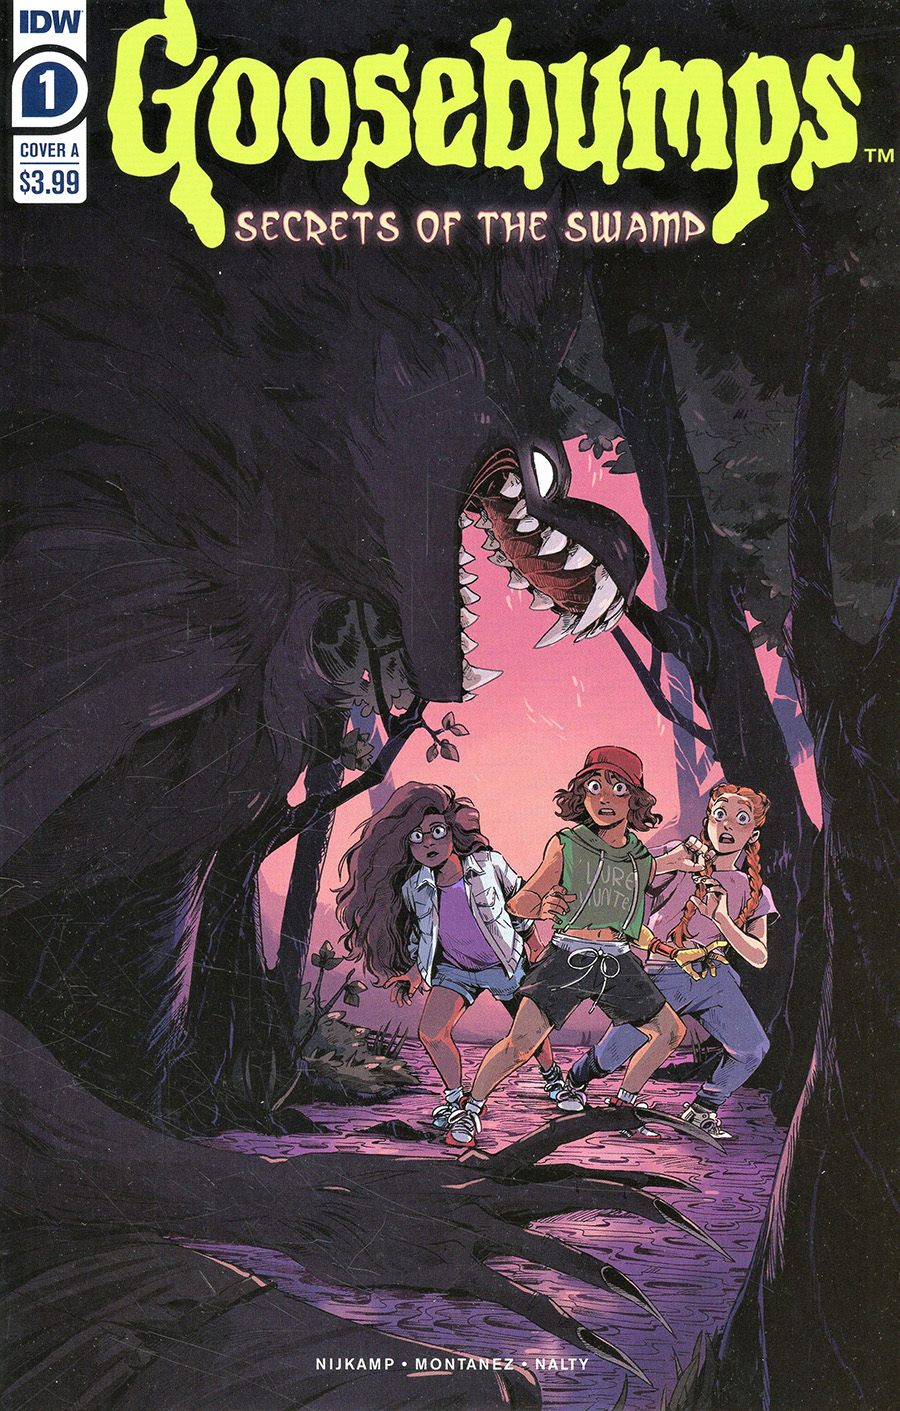 Goosebumps Secrets Of The Swamp #1 Cover A Regular Bill Underwood Cover